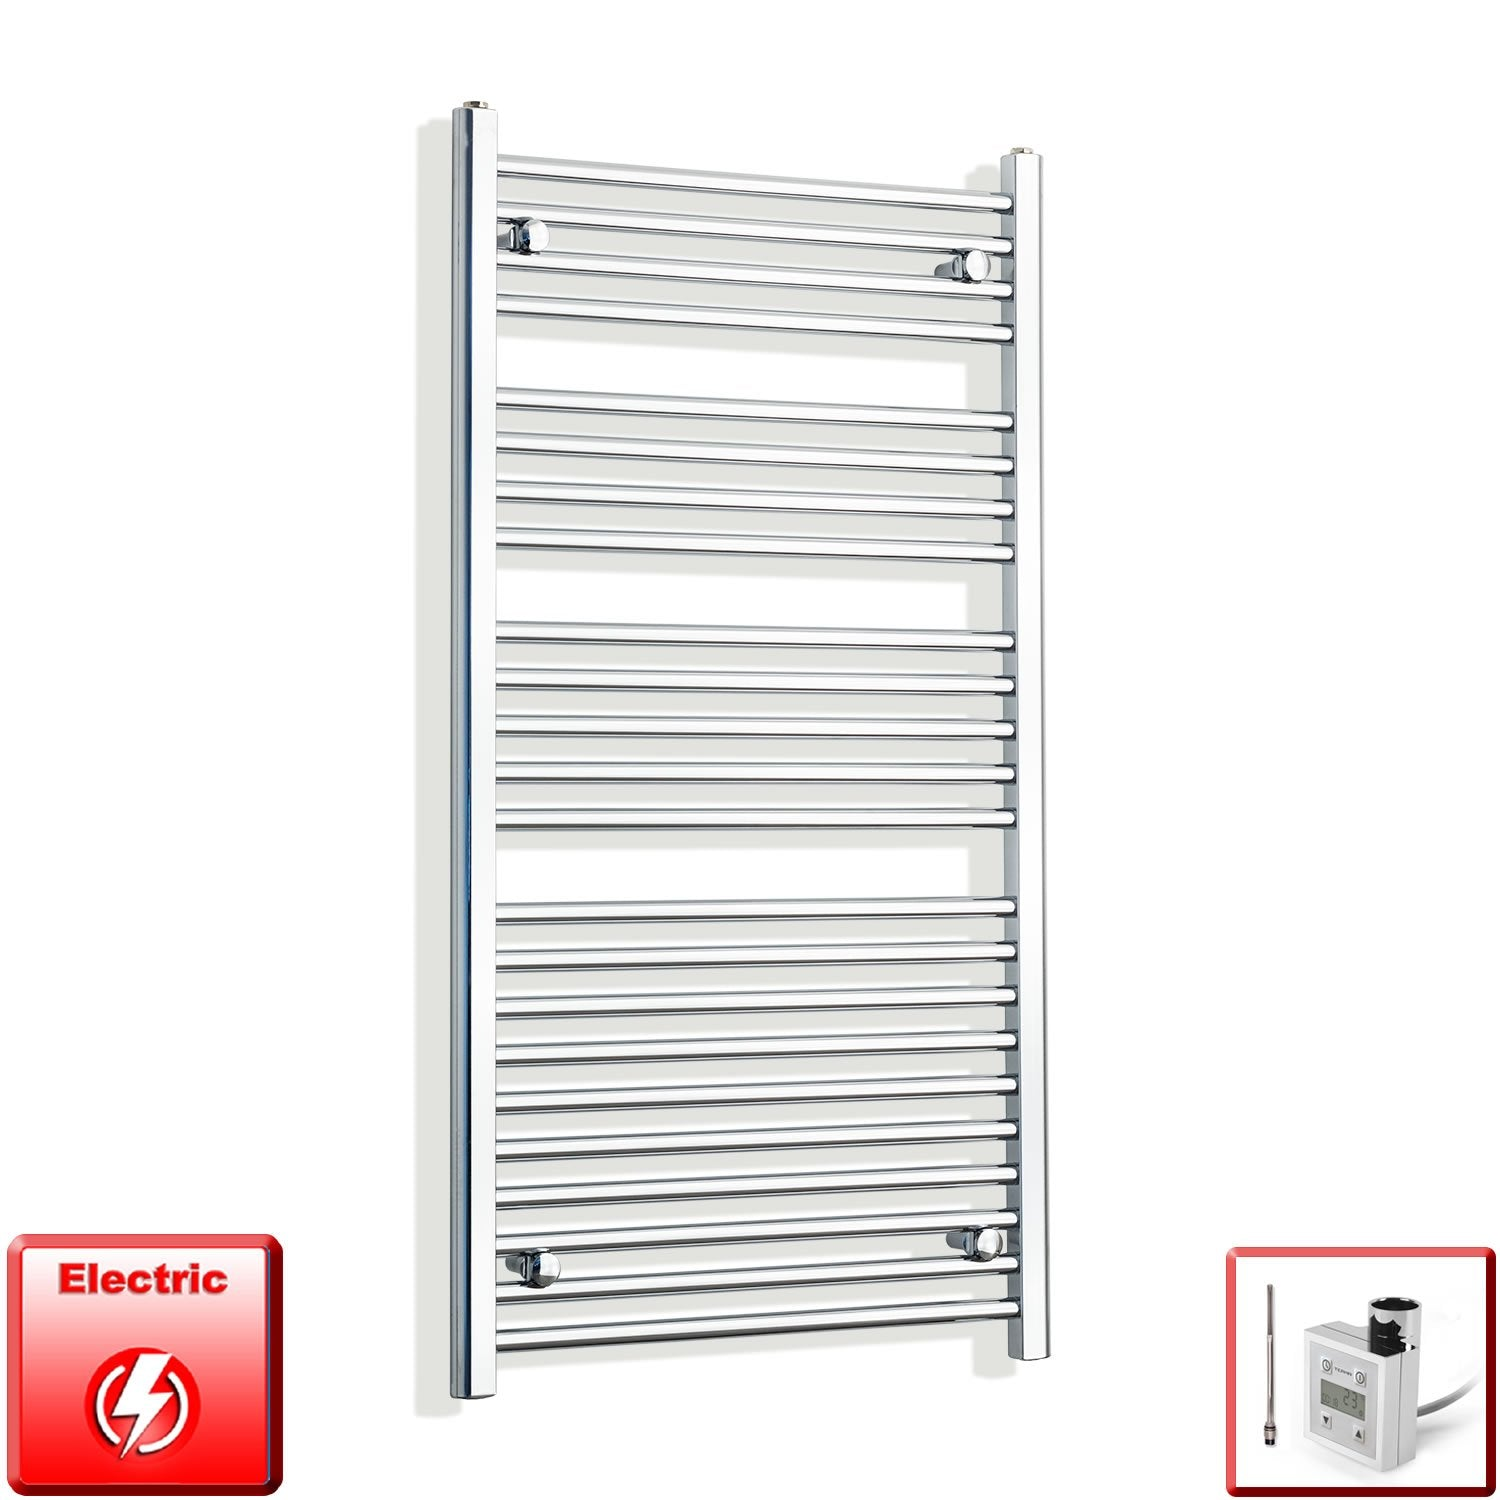 700mm Wide 1200mm High Flat Or Curved Chrome Pre-Filled Electric Heated Towel Rail Radiator HTR,KTX-3 Thermostatic Element / Straight